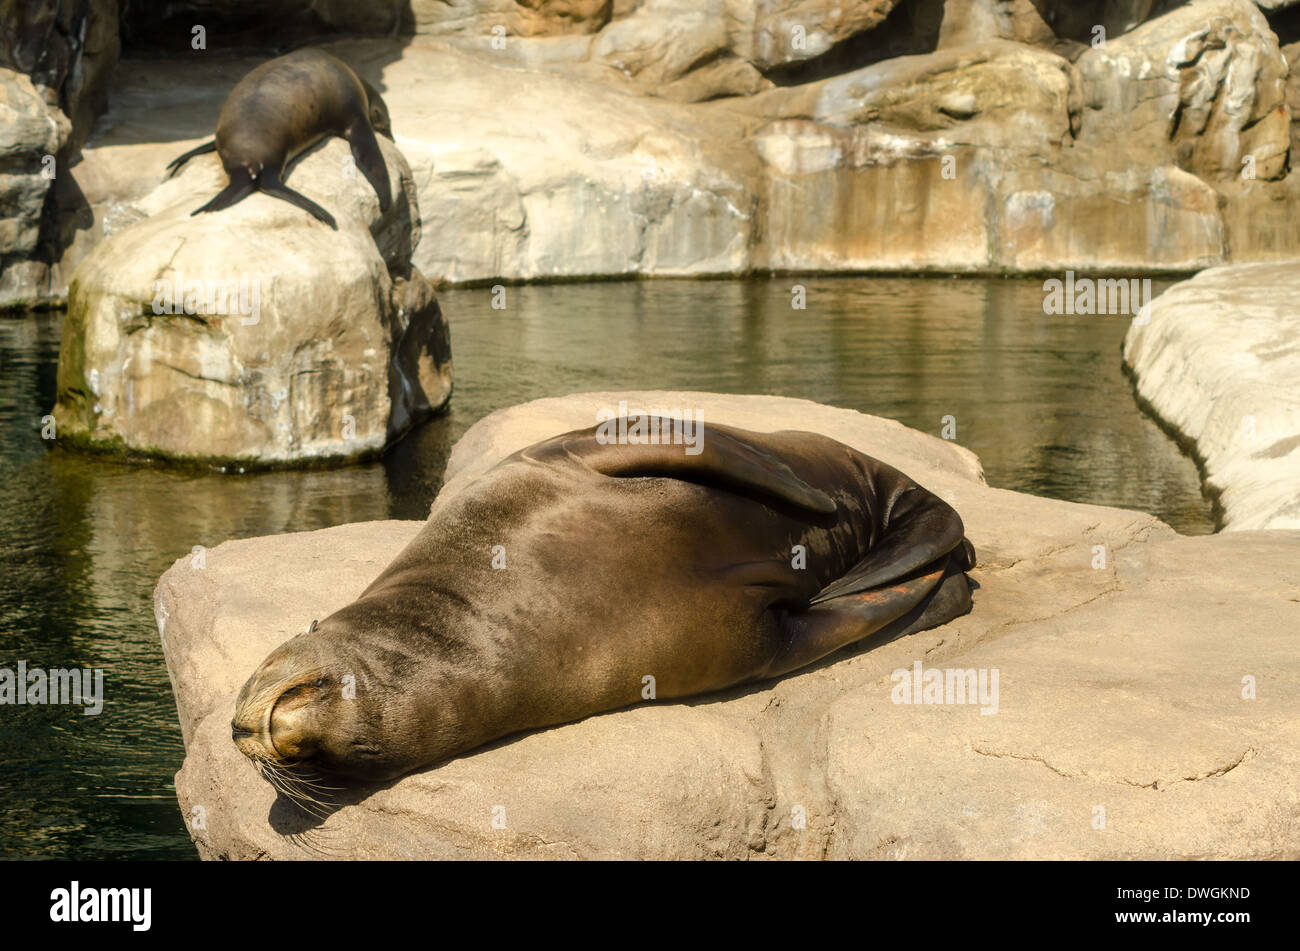 A pair of sea lions relaxing in the sun - Stock Image